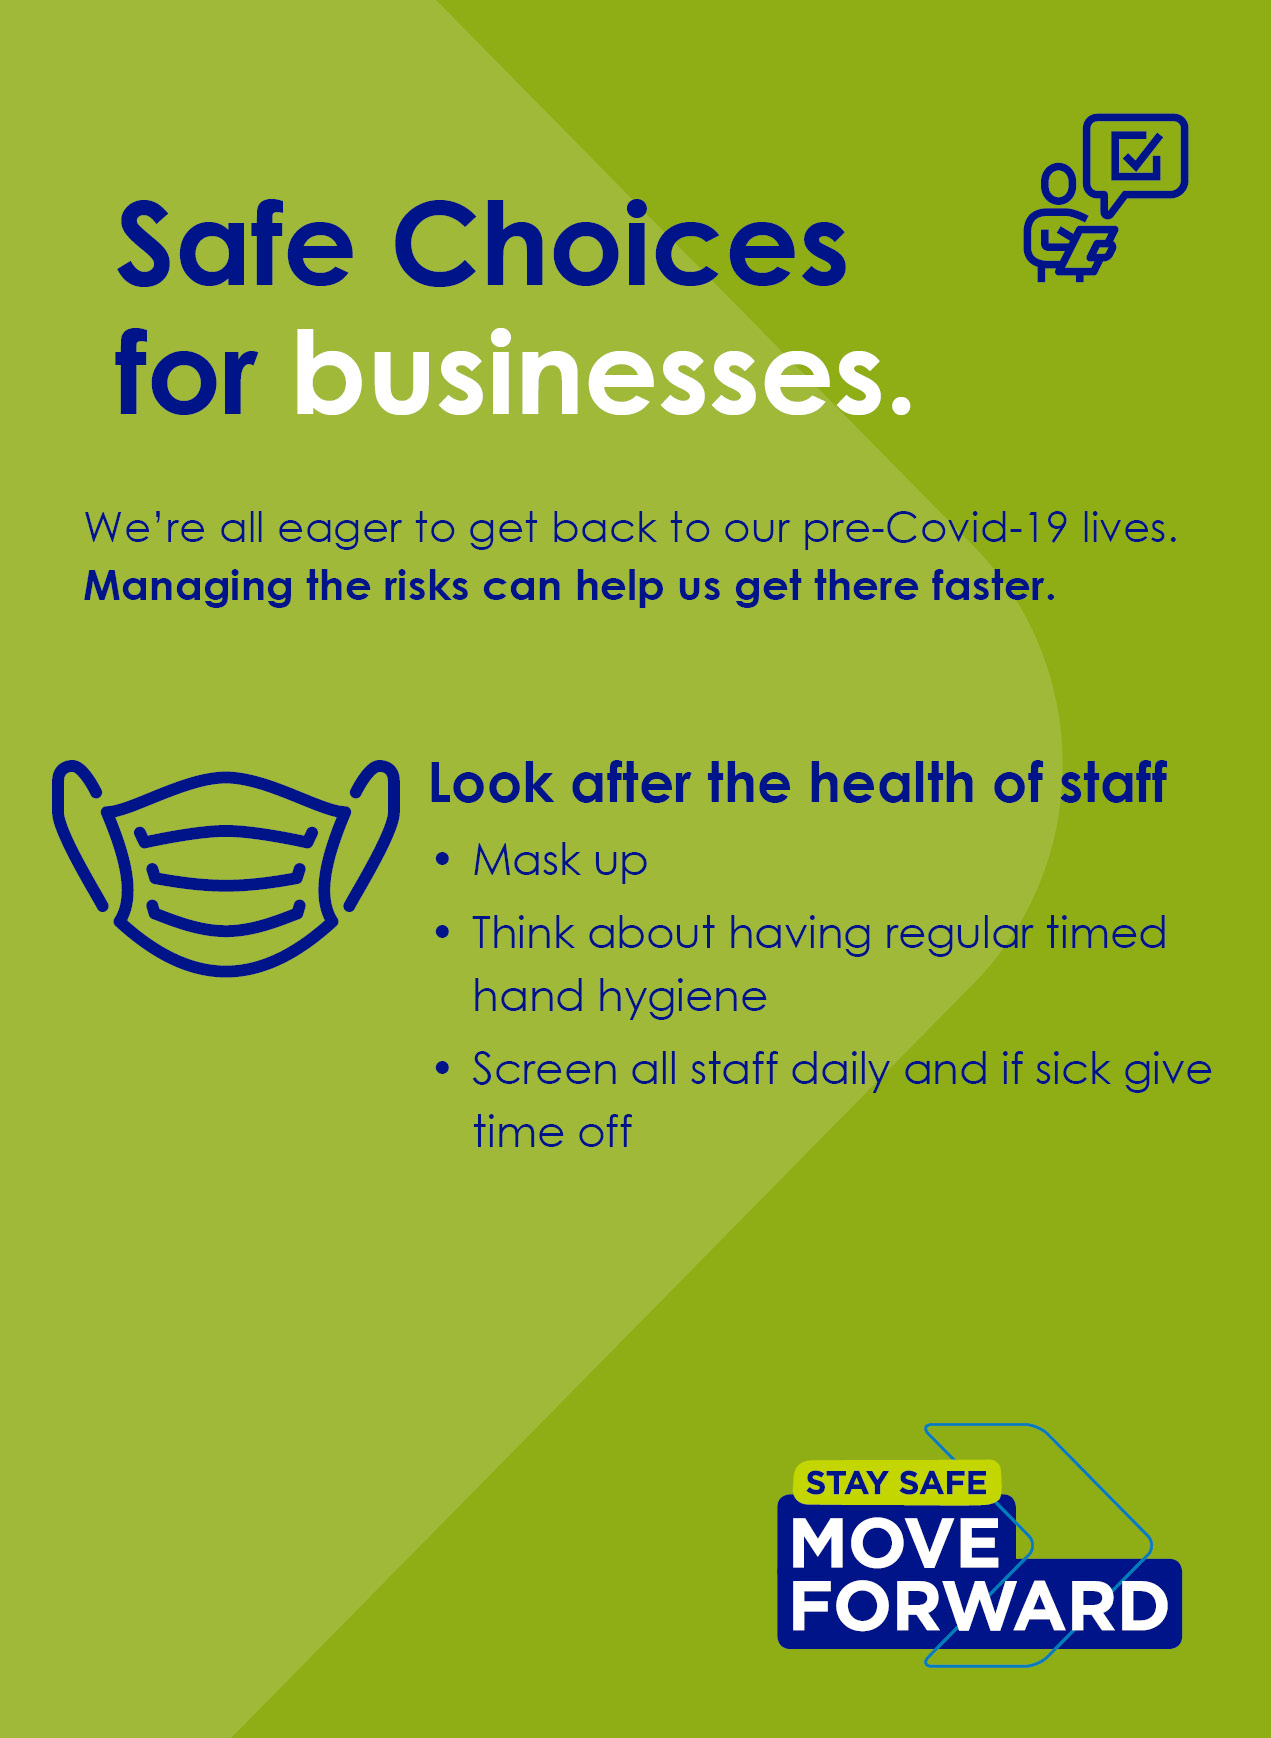 Look after the health of staff